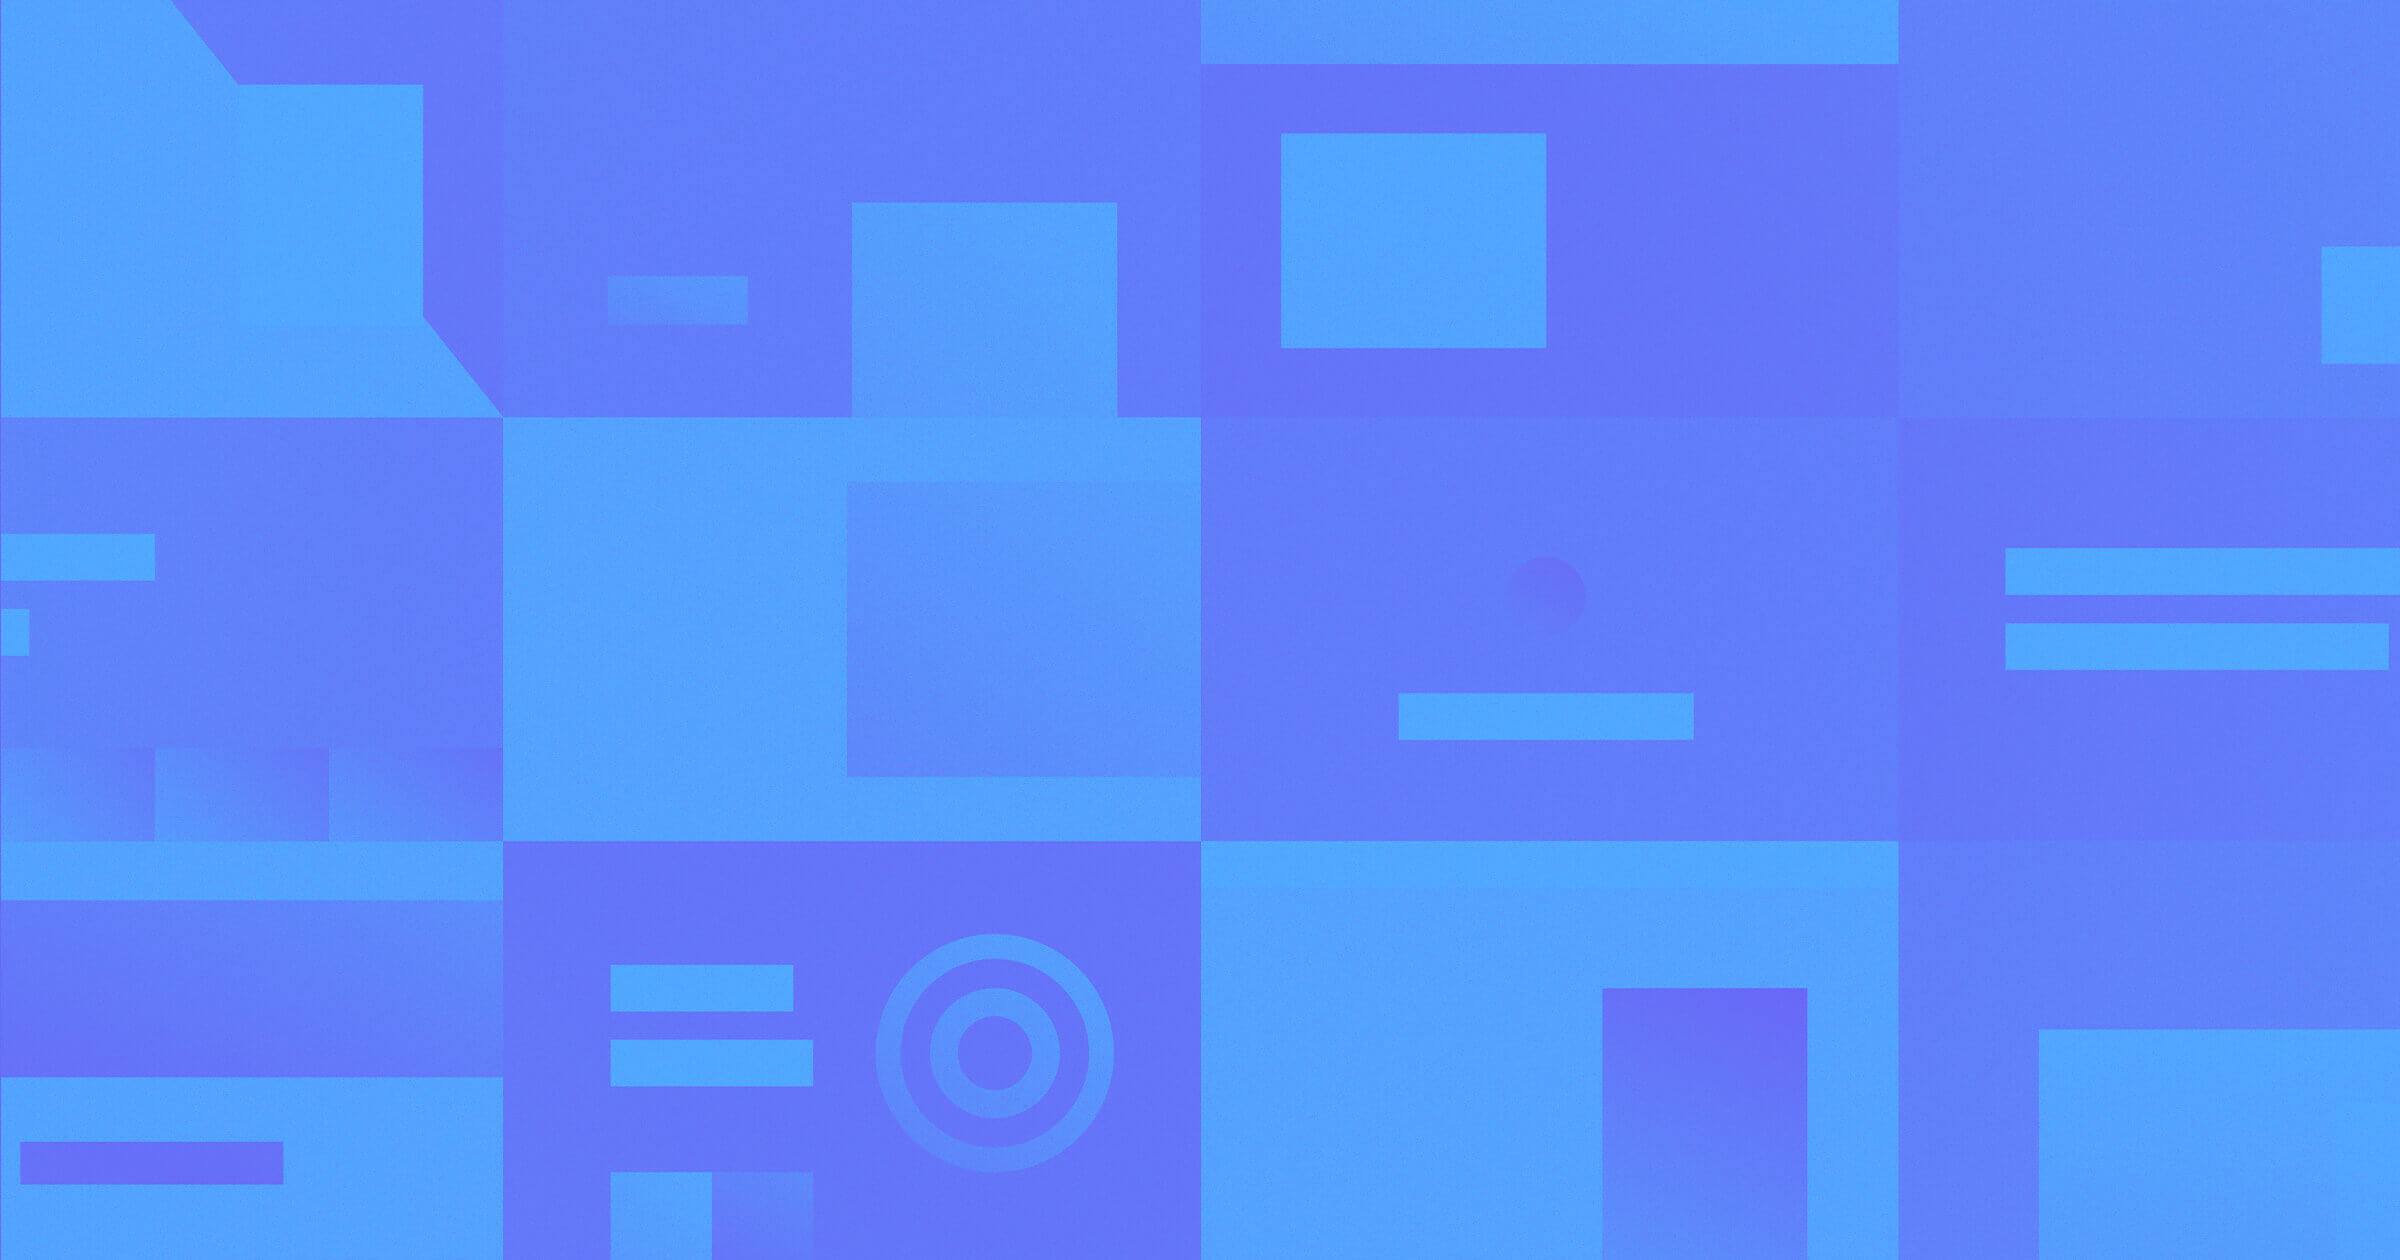 A deep blue and sky blue grid pattern of squares, rectangles, circles and shapes representing abstract elements of a website put together.